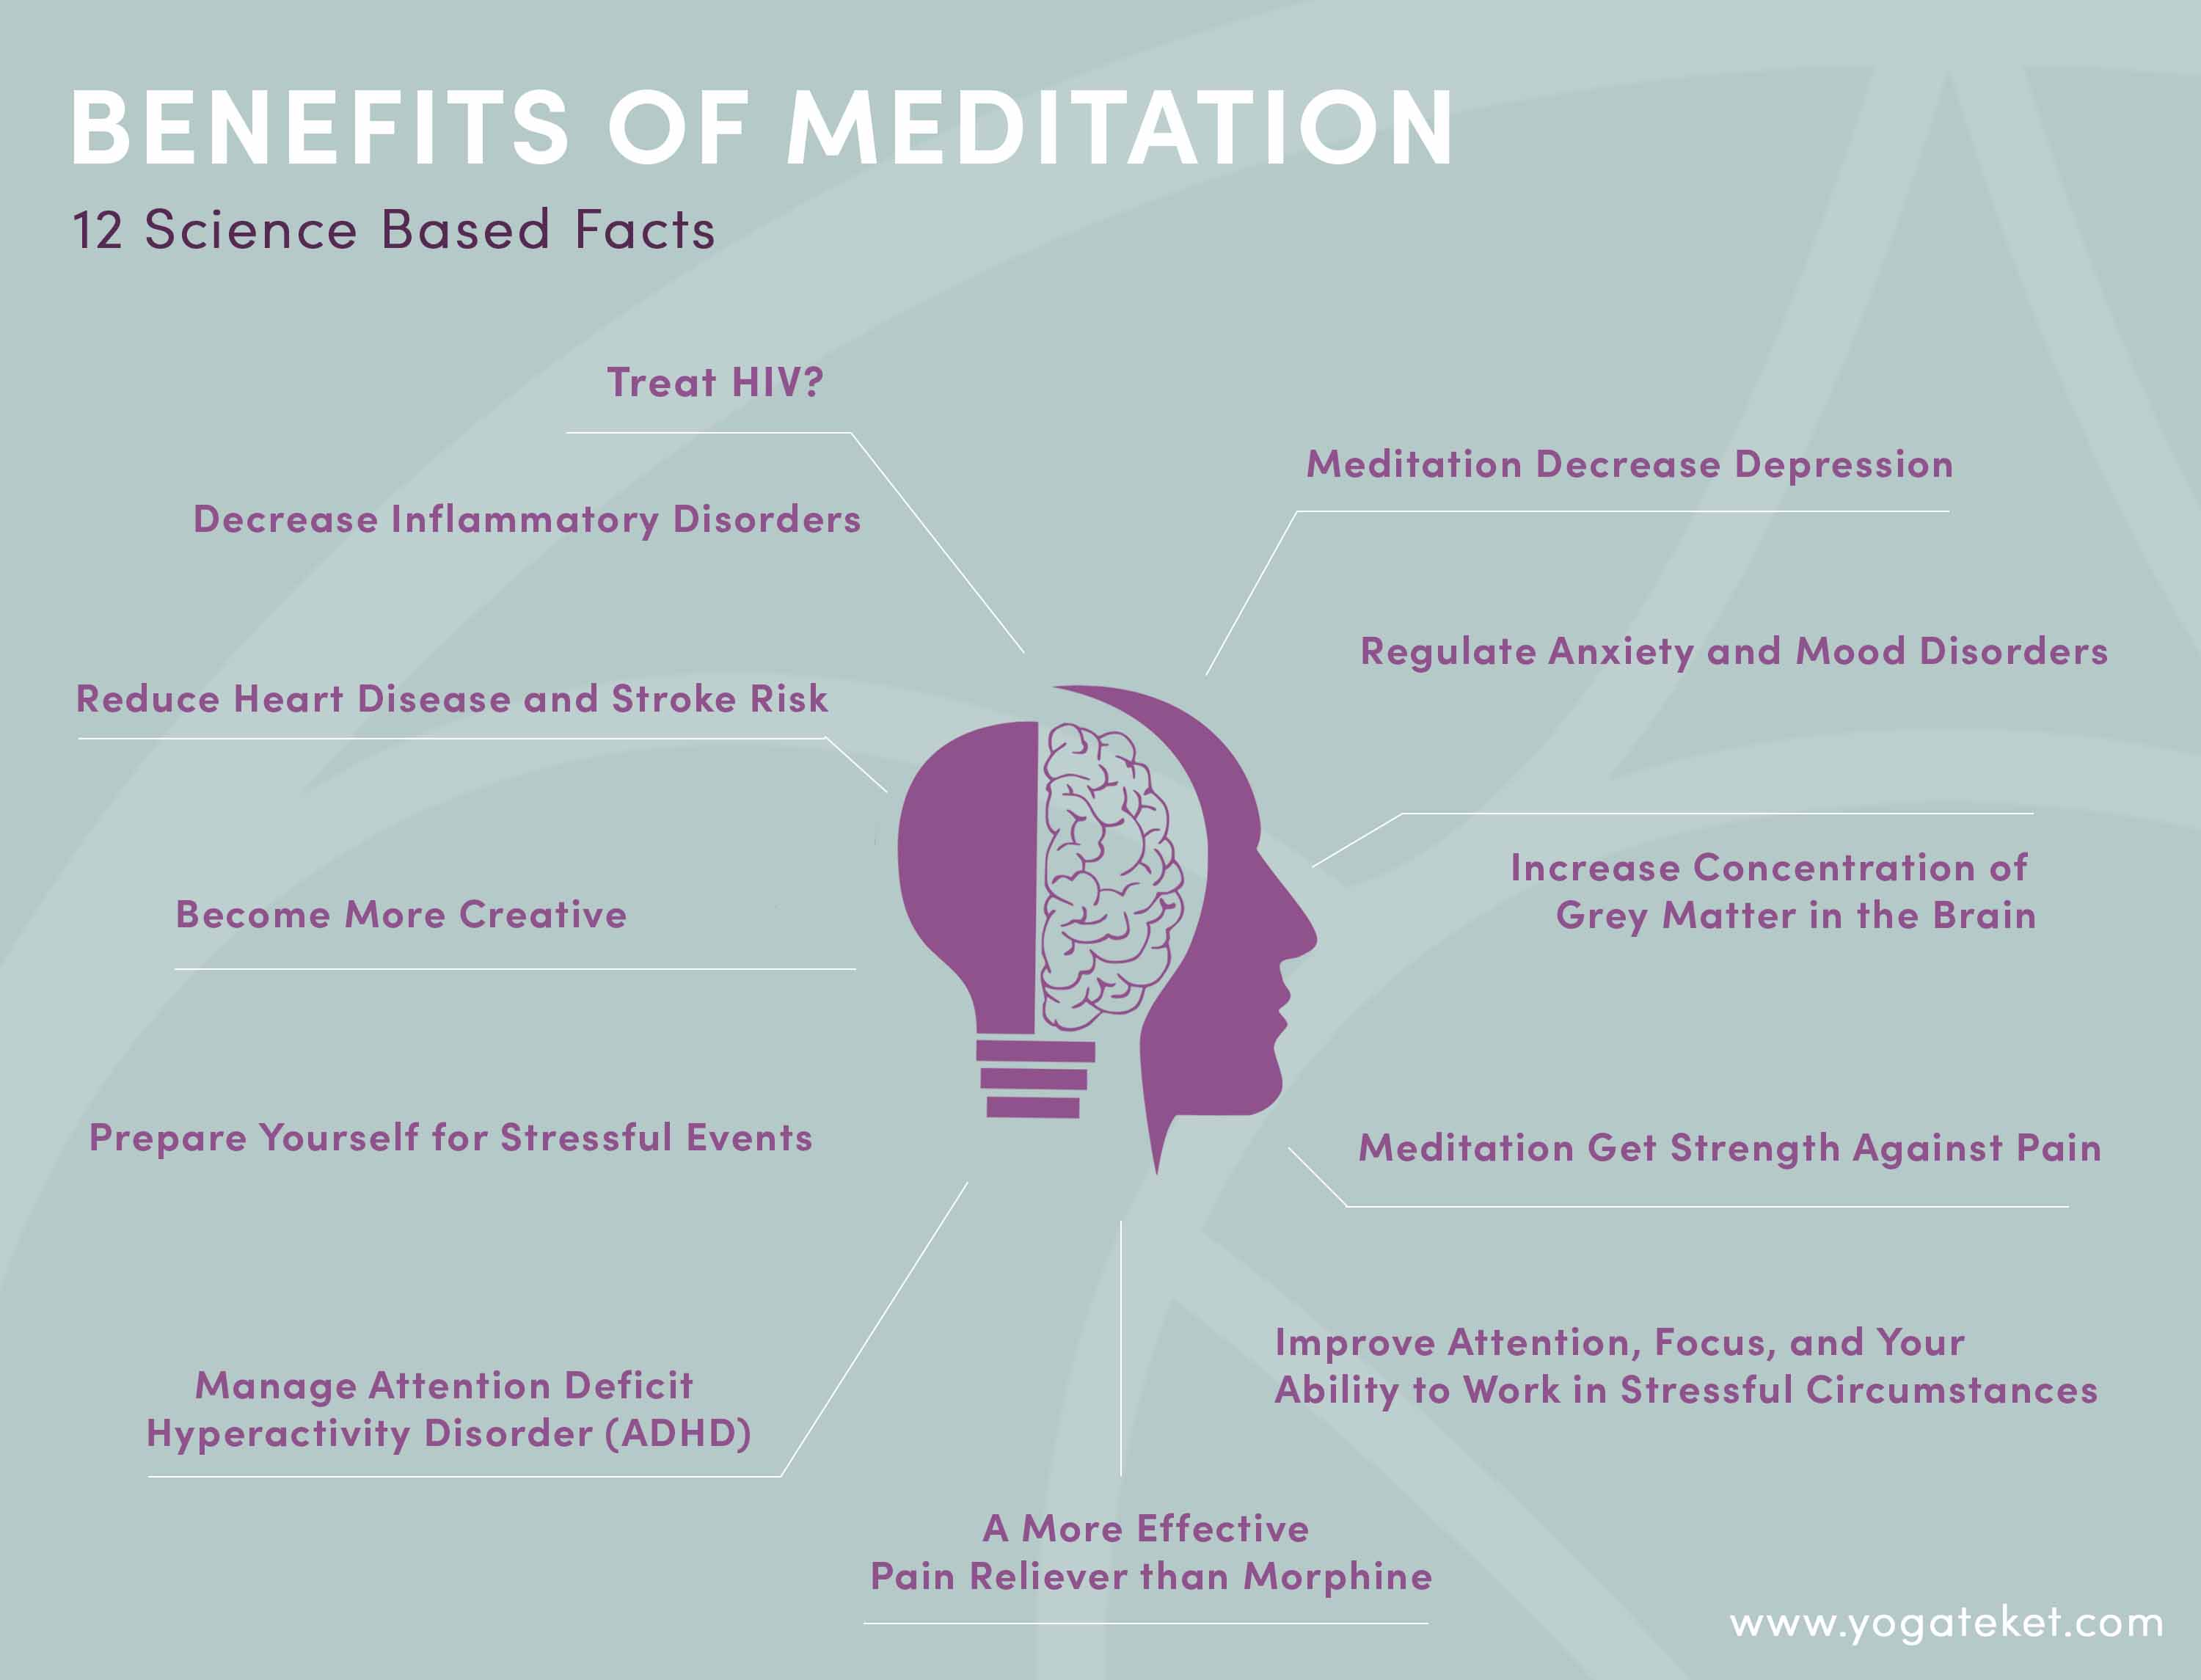 Benefits of Meditation 12 Science Based Facts